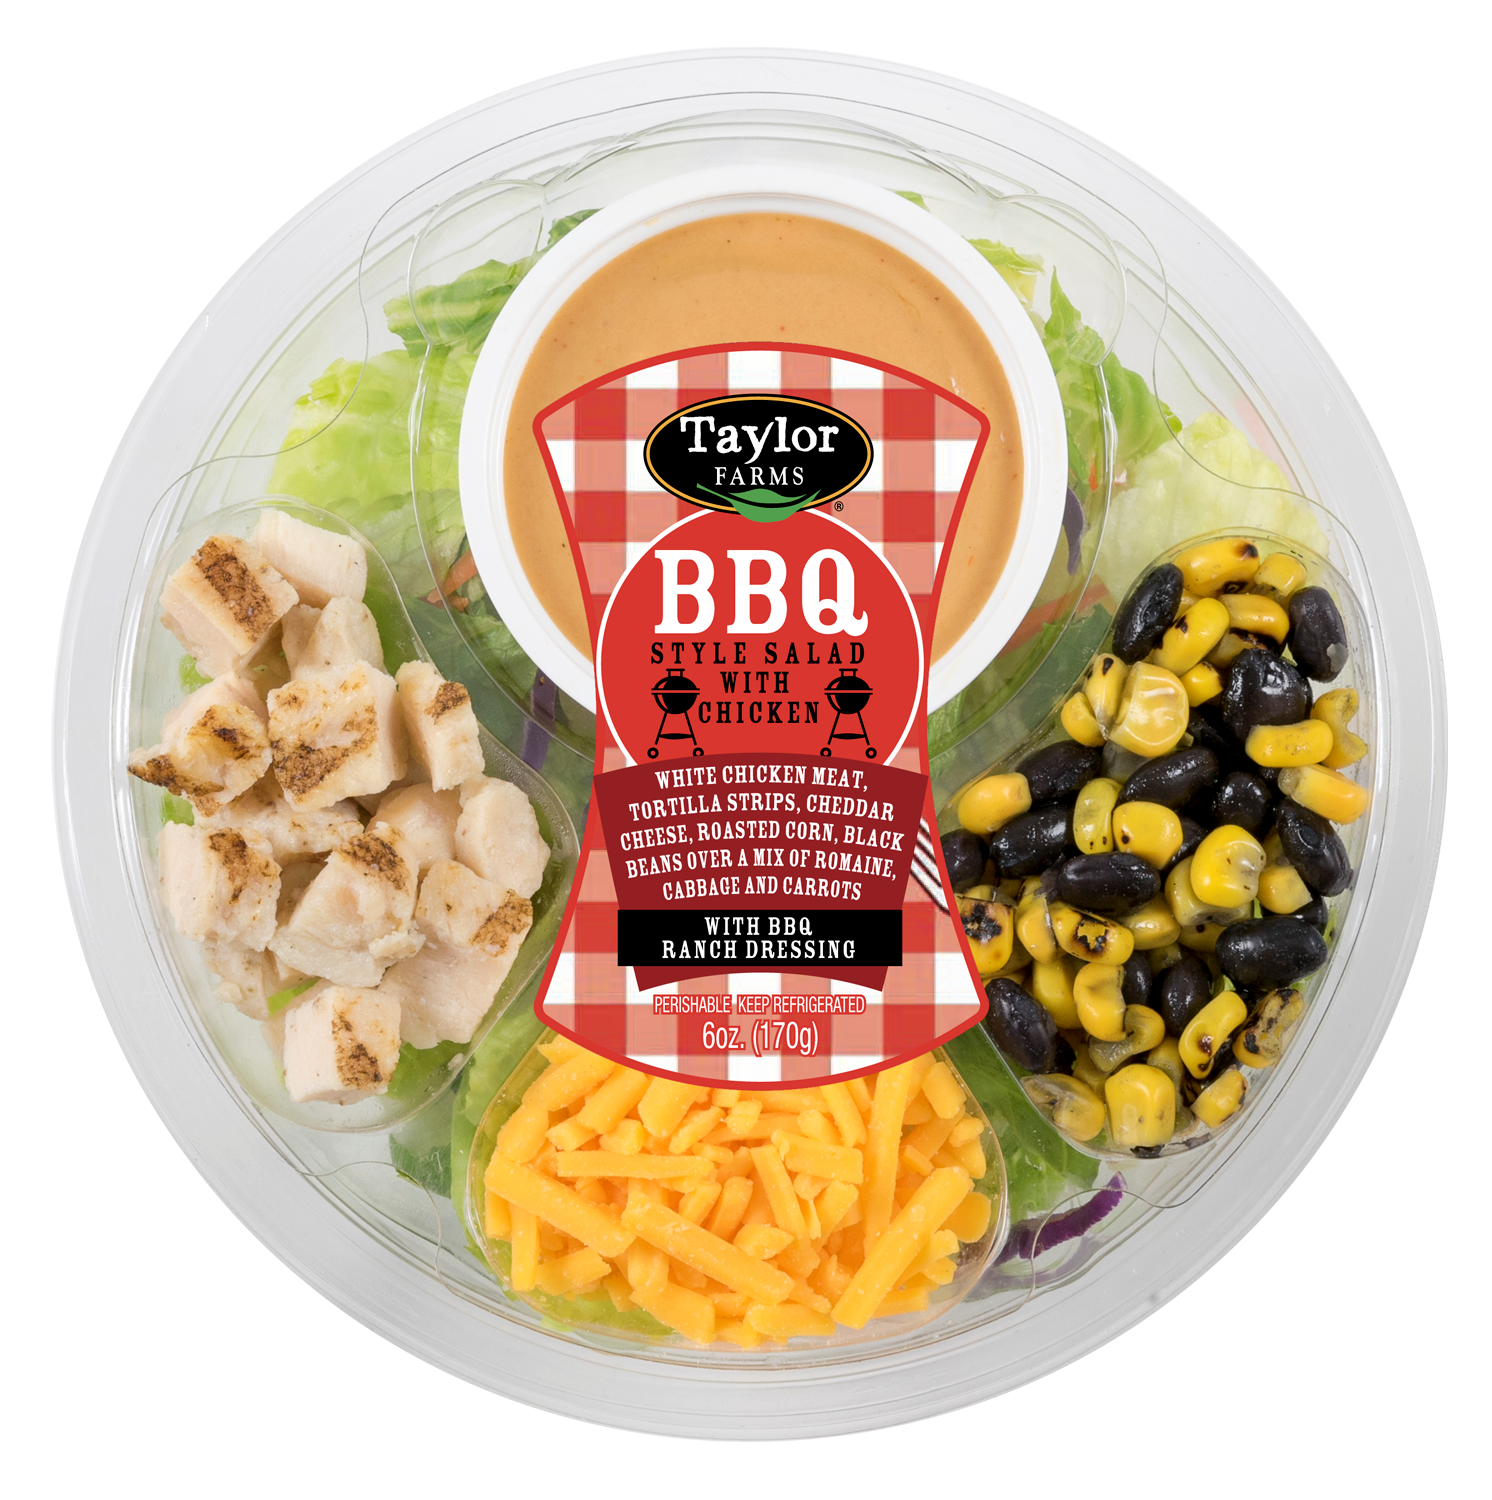 Taylor Farms BBQ Salad with Chicken Round Toss Up